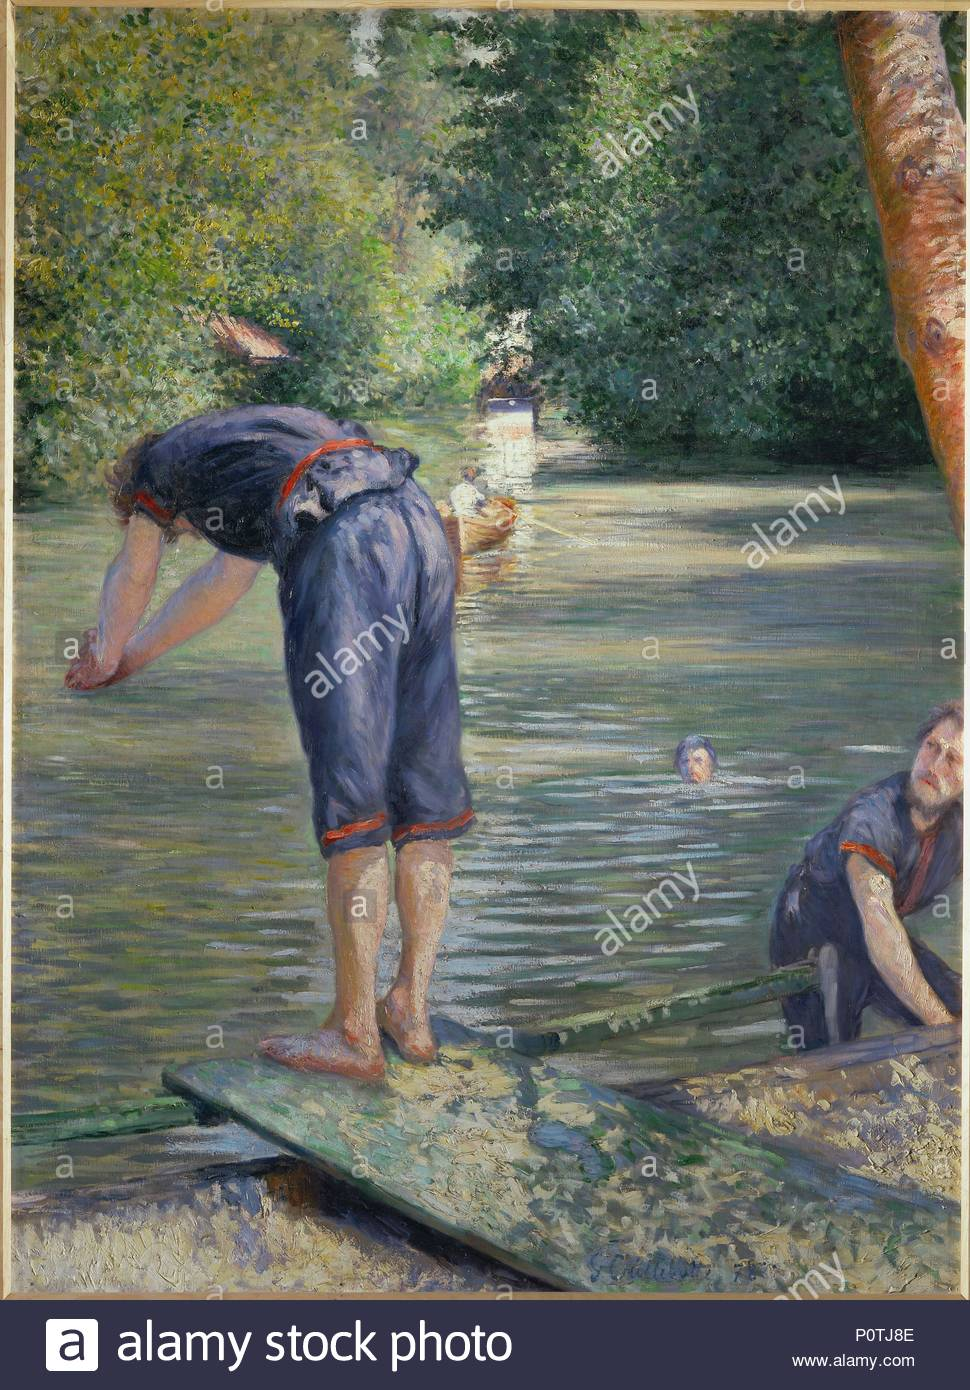 Baigneurs-Bathers, 1878 Oil on canvas, 157 x 117 cm. Author: Gustave Caillebotte (1848-1894). Location: Private Collection,, France. - Stock Image